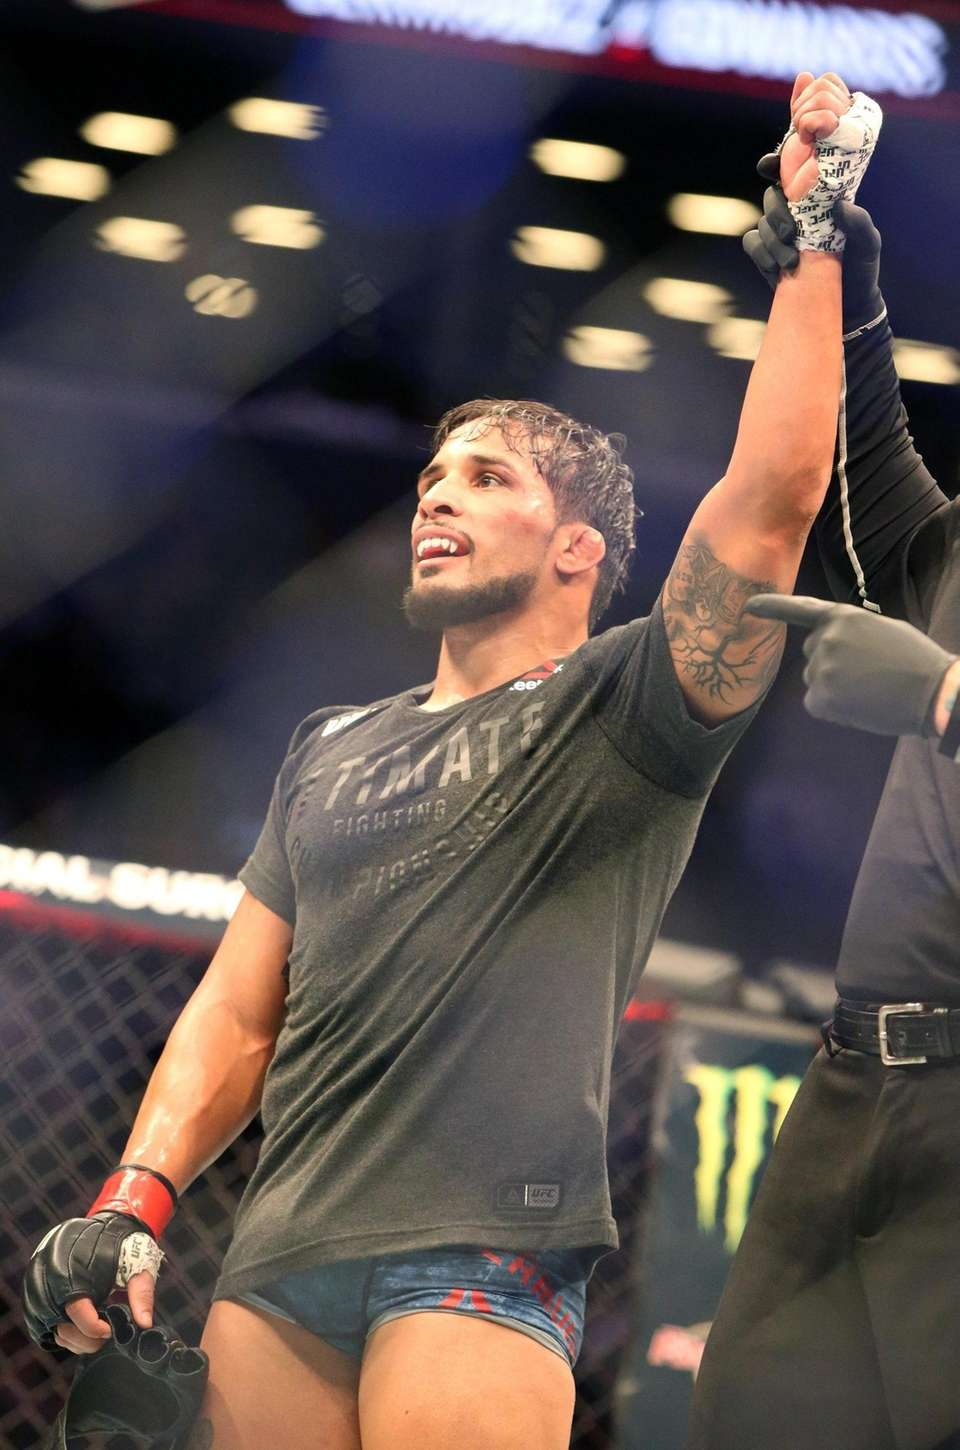 At 155 lbs Dennis Bermudez defeated Te Edwards